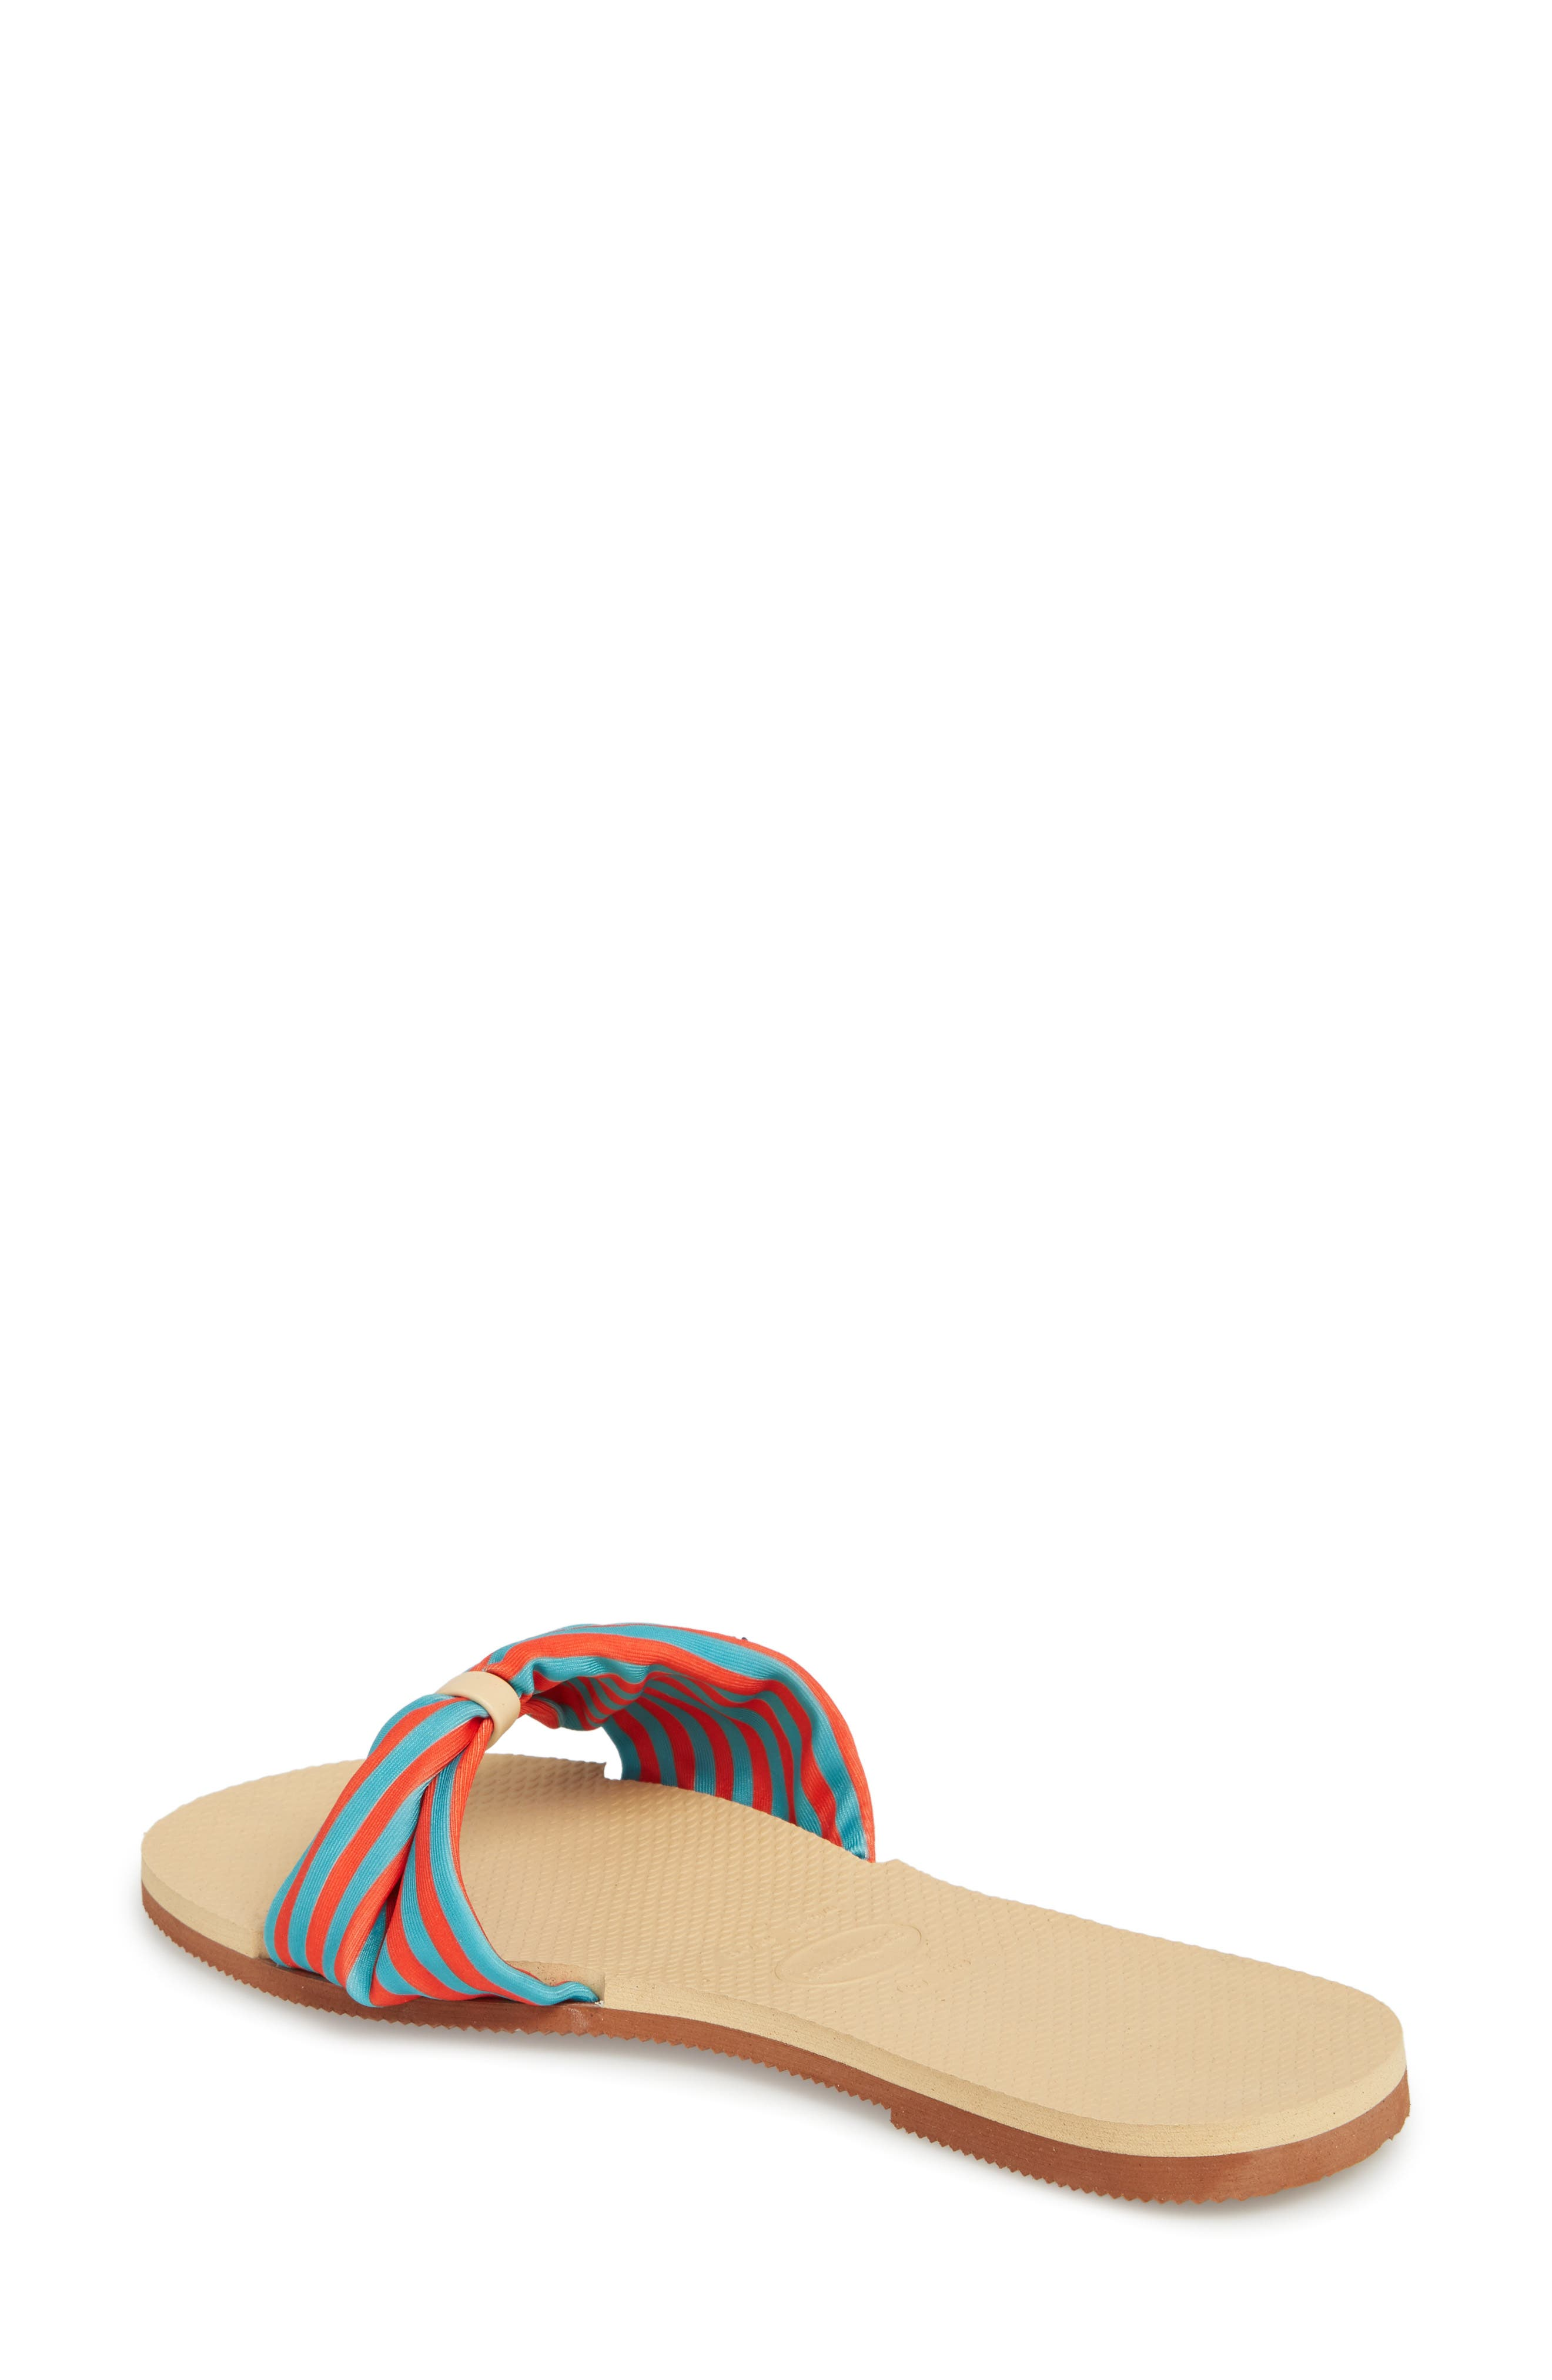 You Saint Tropez Sandal,                             Alternate thumbnail 2, color,                             IVORY